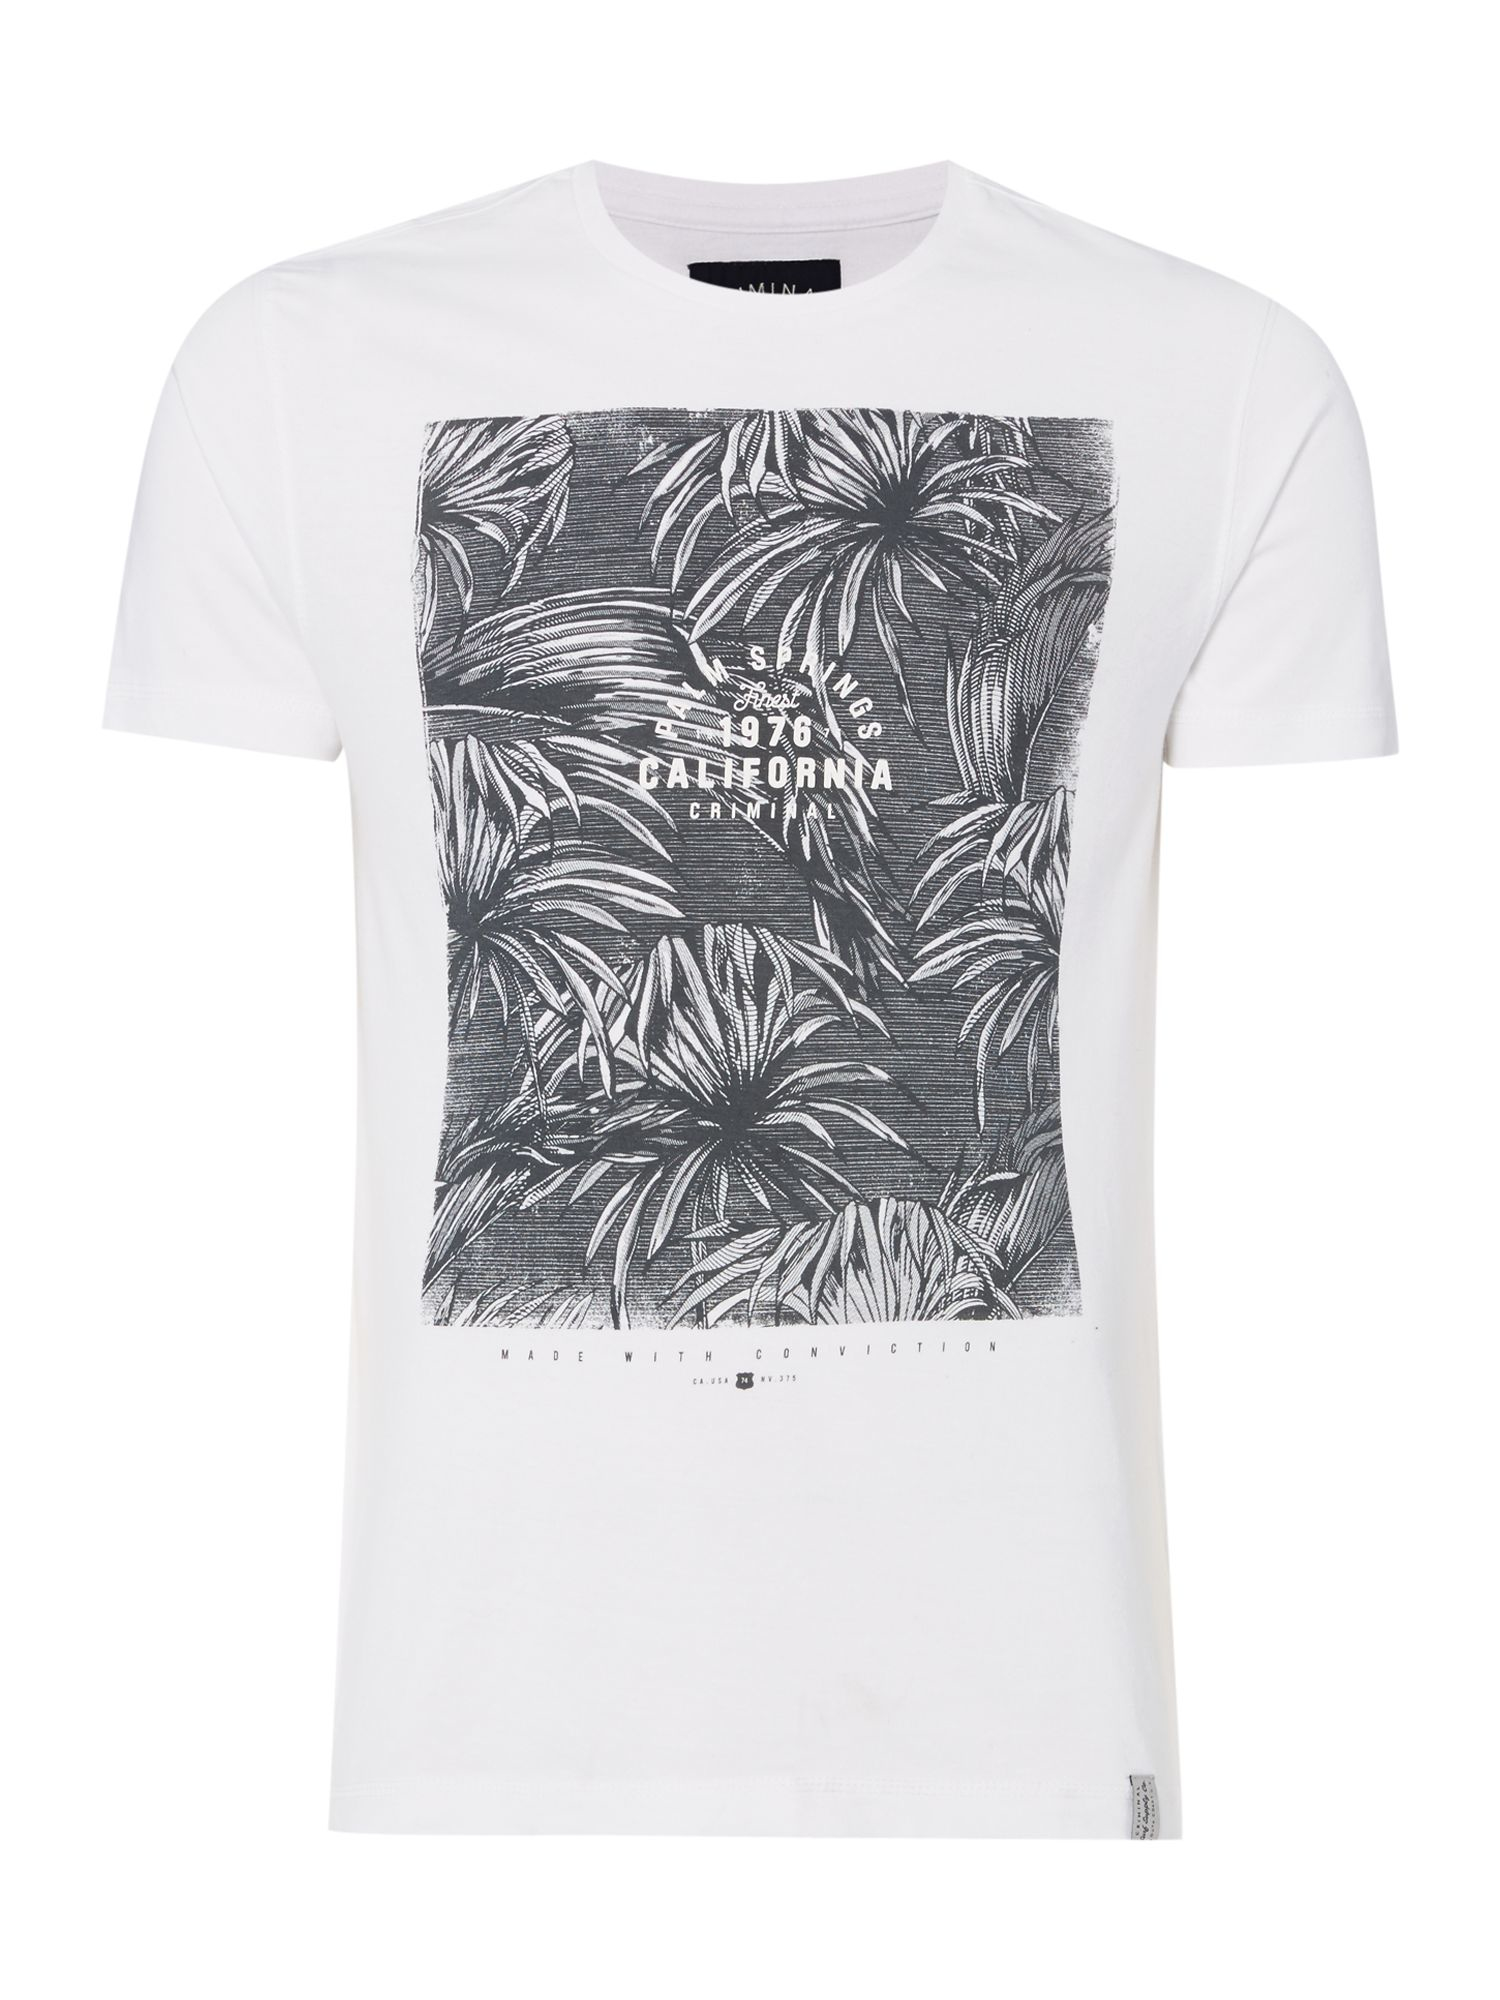 Criminal palm springs monochrome print tshirt in white for for T shirt city palm springs